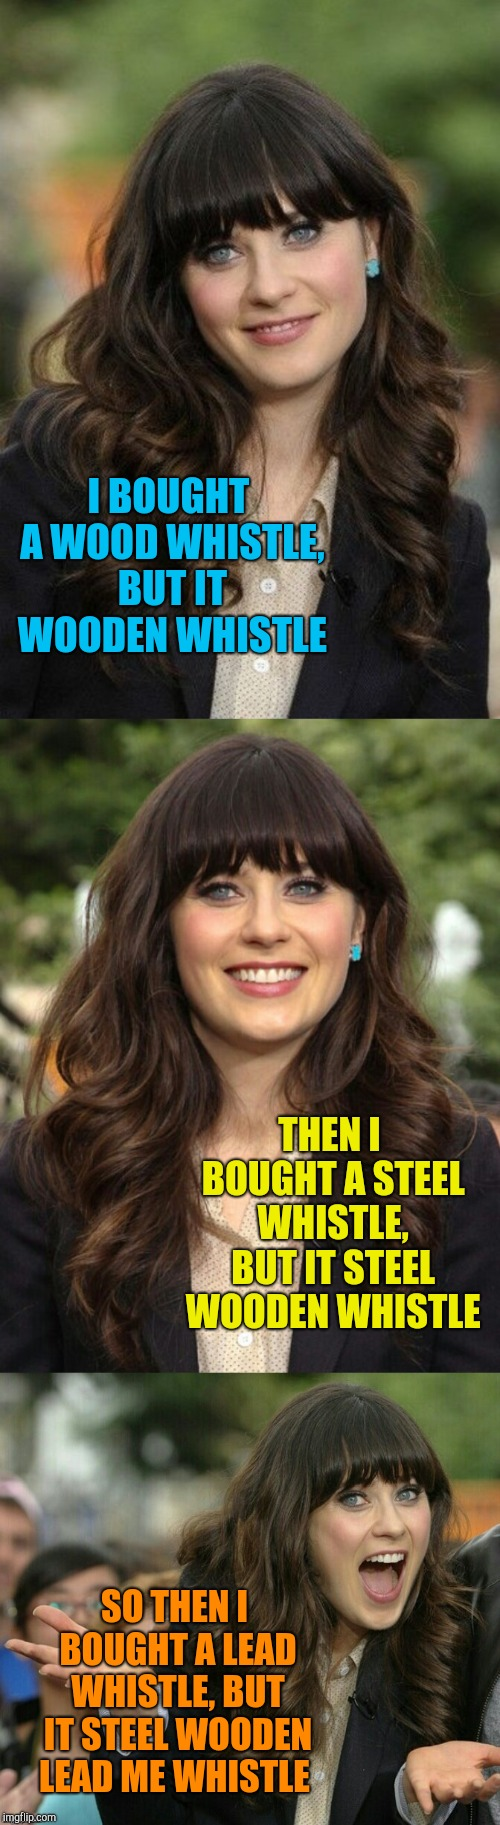 Zooey Deschanel joke template | I BOUGHT A WOOD WHISTLE, BUT IT WOODEN WHISTLE THEN I BOUGHT A STEEL WHISTLE, BUT IT STEEL WOODEN WHISTLE SO THEN I BOUGHT A LEAD WHISTLE, B | image tagged in zooey deschanel joke template,bad puns,jbmemegeek,zooey deschanel | made w/ Imgflip meme maker